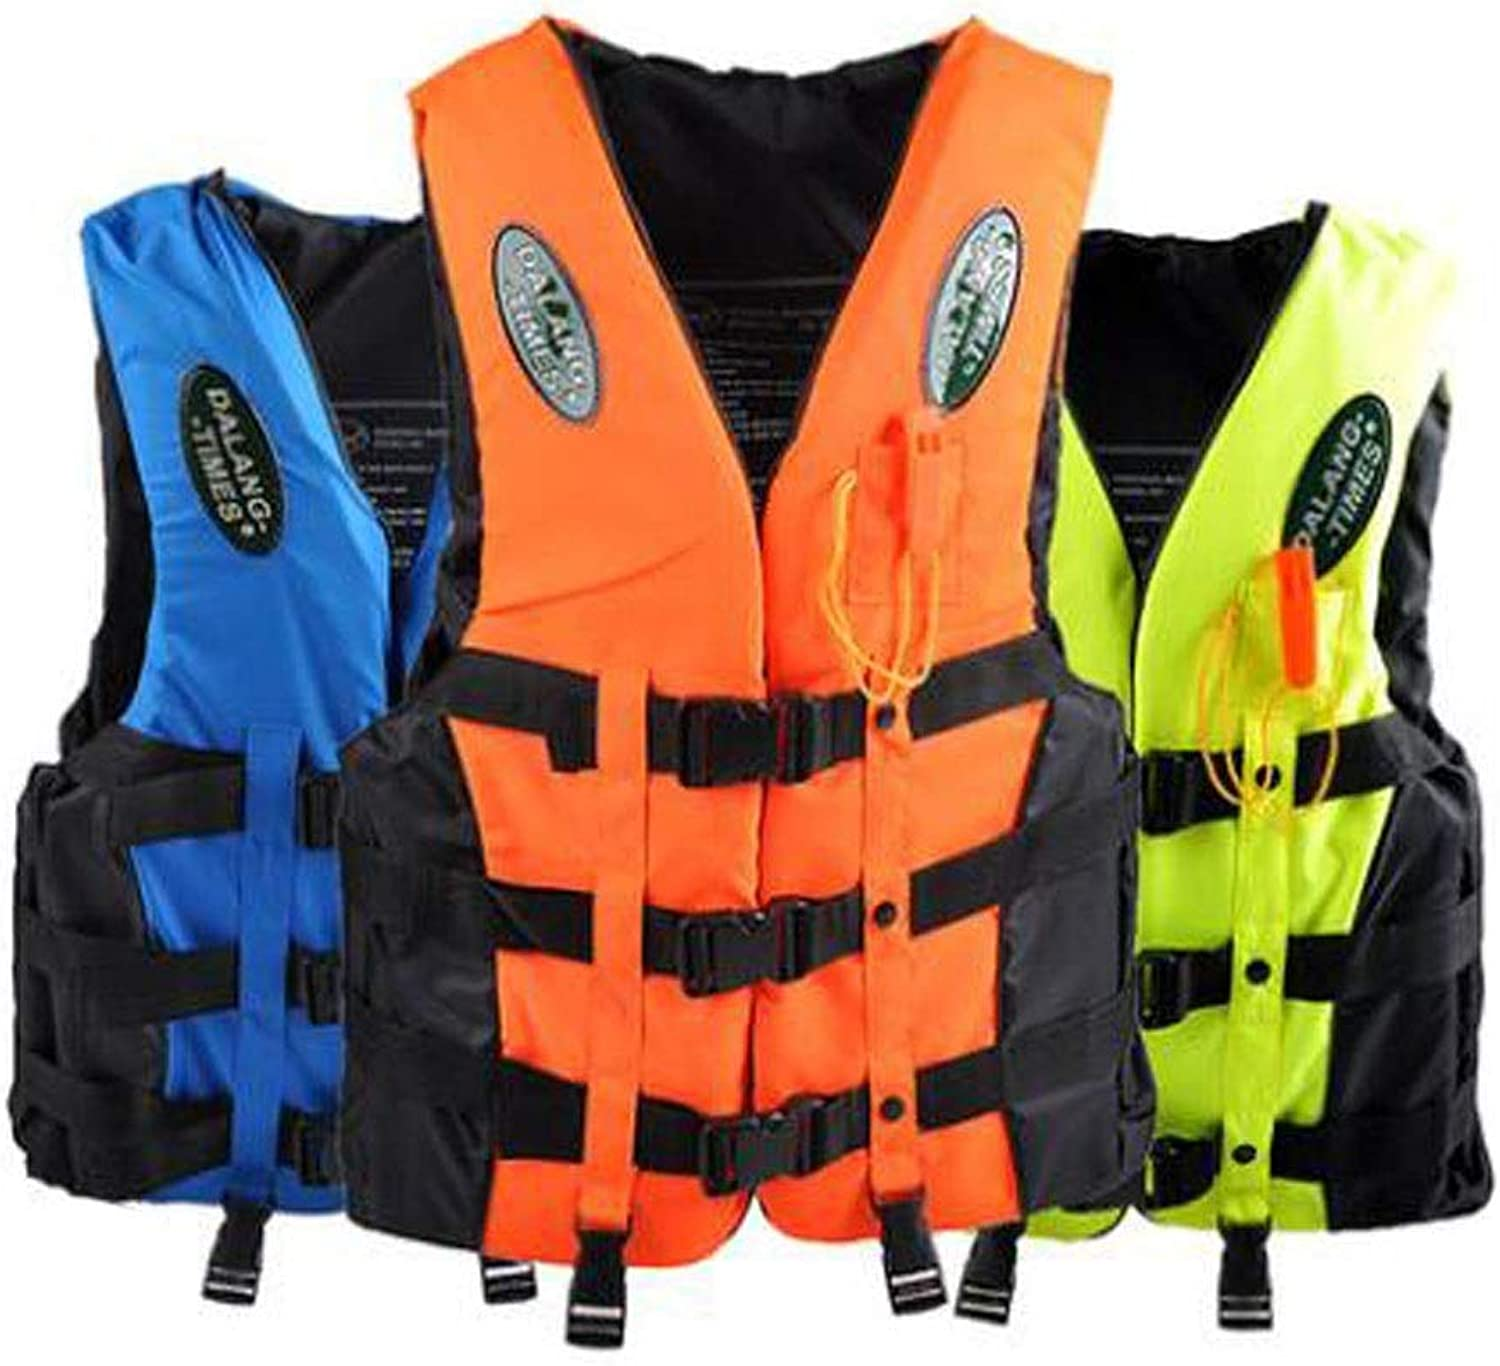 Aishanghuay Inflatable Life Jacket Adult Swim Vest for Snorkeling, Swimming, Outdoor Play, Size L, XL, XXL, XXXL, color  bluee, Green, orange Fashion